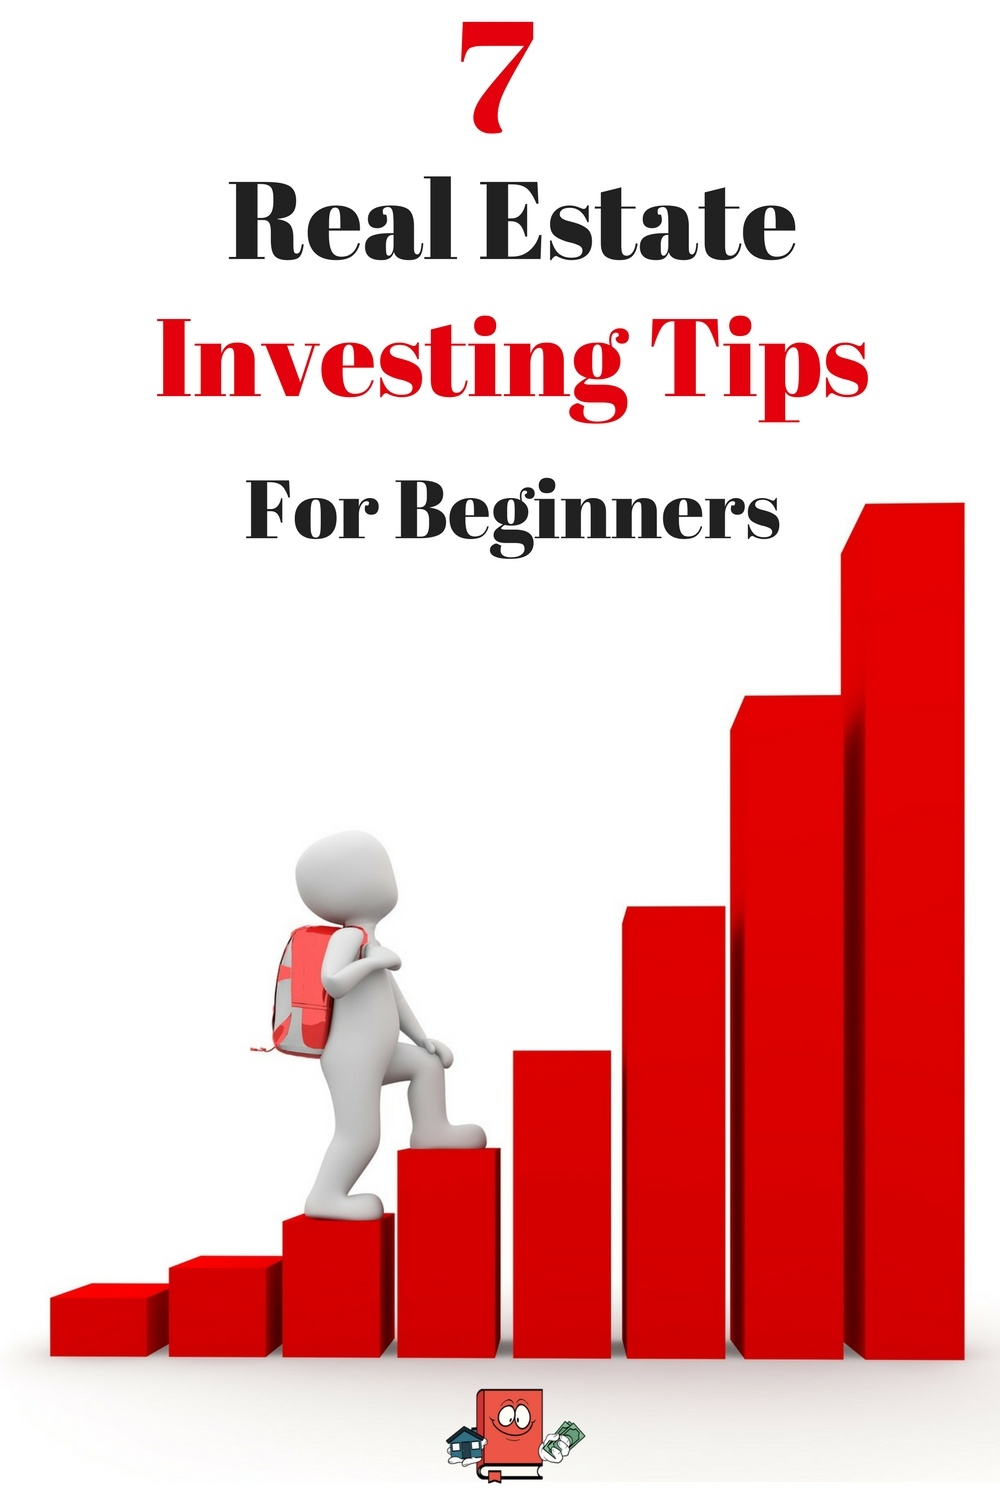 7 Real Estate Investing Tips For Beginners  Cash Flow Diaries. Fort Worth Exterminator Ip Telephony Solution. Movers In Northern Virginia Library Gcu Edu. Facebook Video Call Setup Banks In Athens Tx. 100 Colleges That Change Lives. Causes Of Chronic Joint Pain. California Tech Colleges Film Editing Degrees. Web Development Short Courses. Sidky Family Dentistry Manpower Charleston Sc